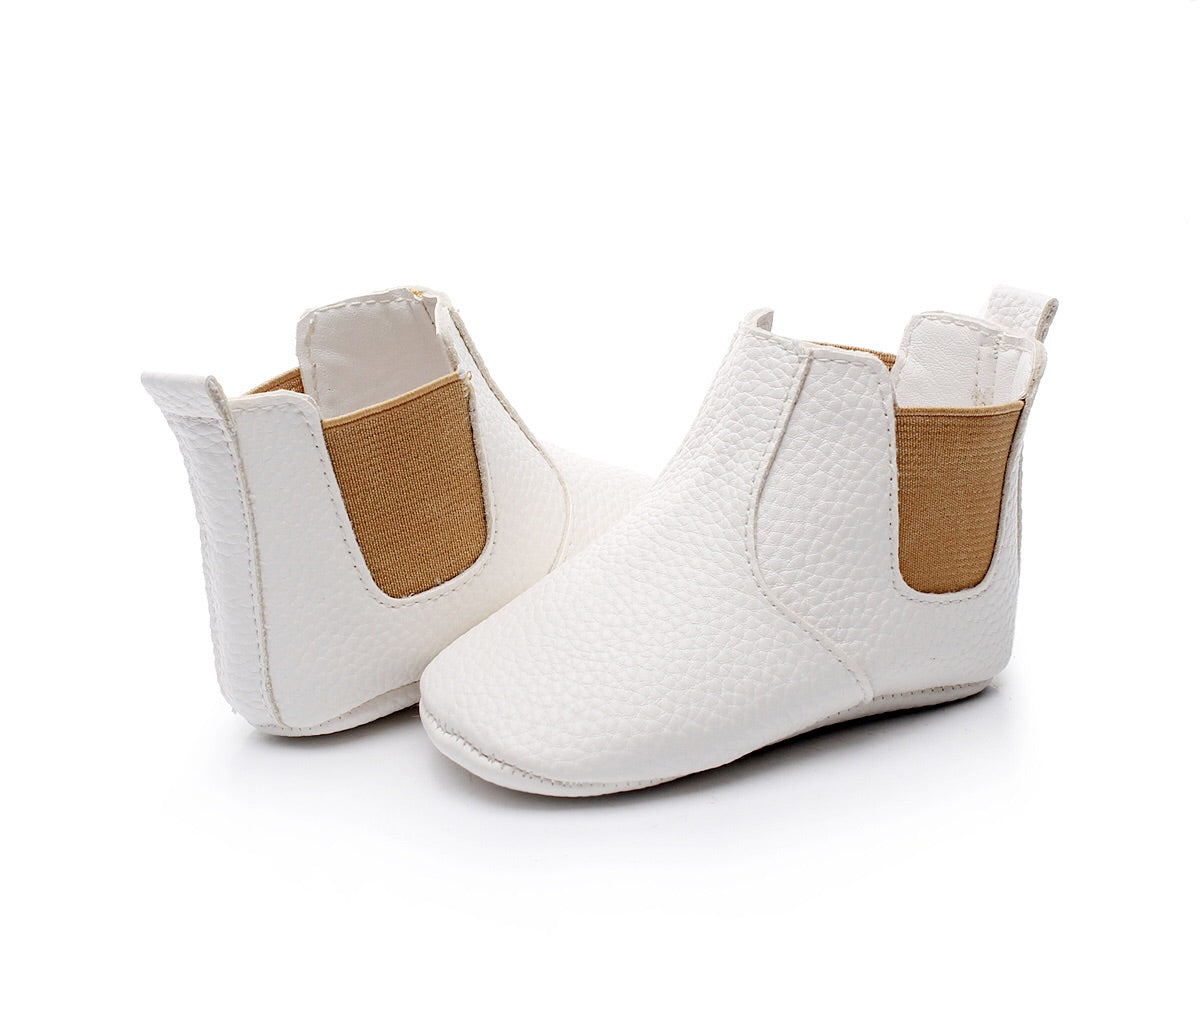 White/tan slip on boots